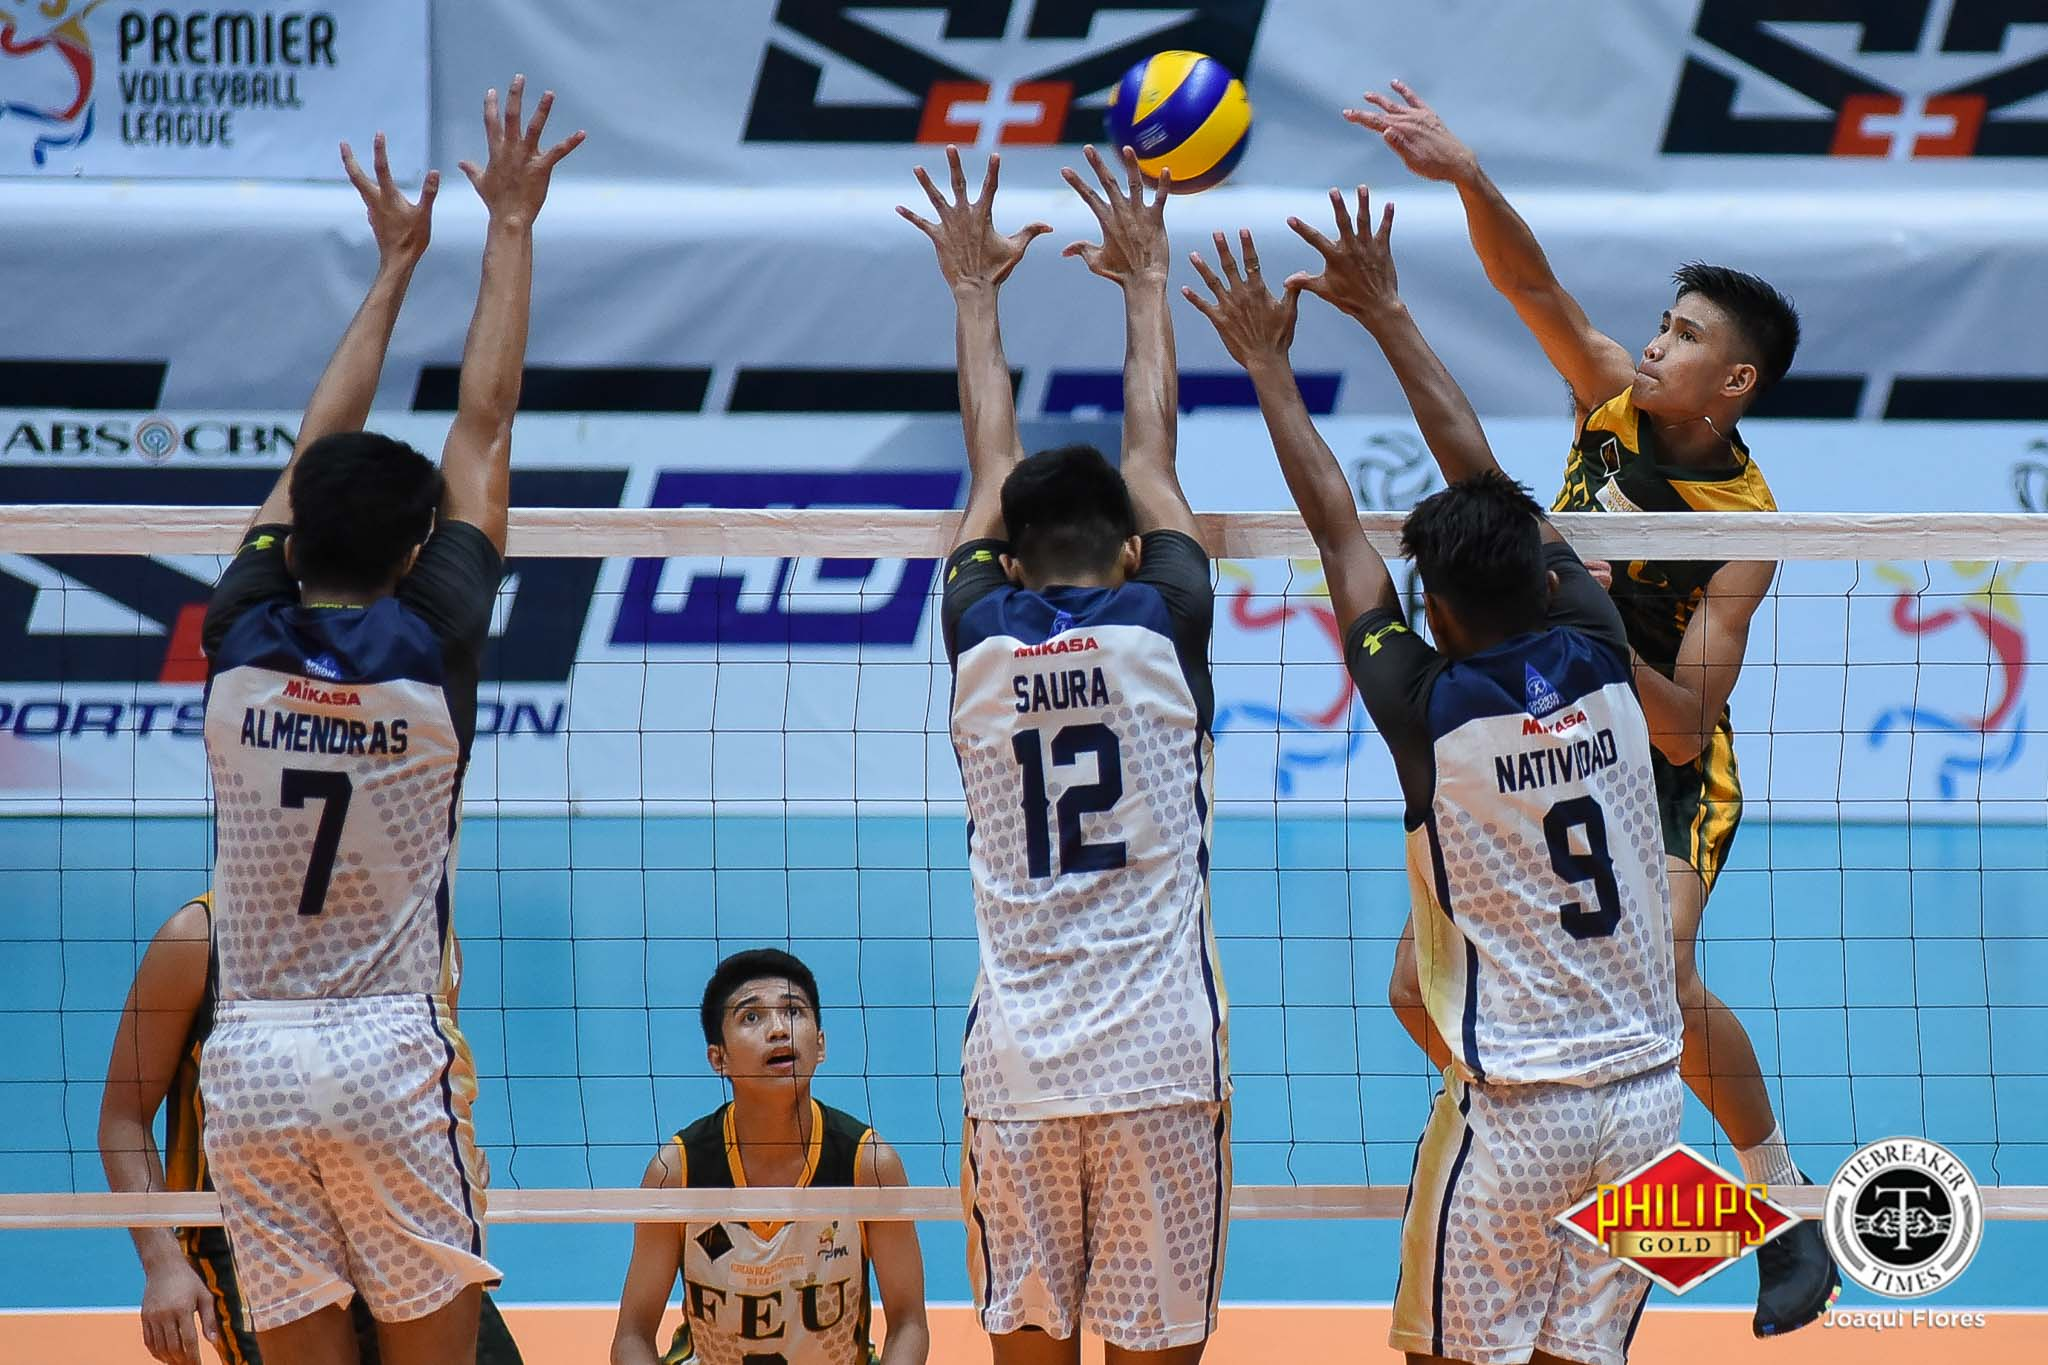 Tiebreaker Times Tamaraws takes Game 1 from wasteful Bulldogs FEU News NU PVL Volleyball  Rey Diaz Owen Suarez NU Men's Volleyball Nico Almendras Mark Calado JP Bugaoan Joshua Barrica FEU Men's Volleyball Dante Alinsunurin Bryan Bagunas 2018 PVL Season 2018 PVL Men's Collegiate Conference